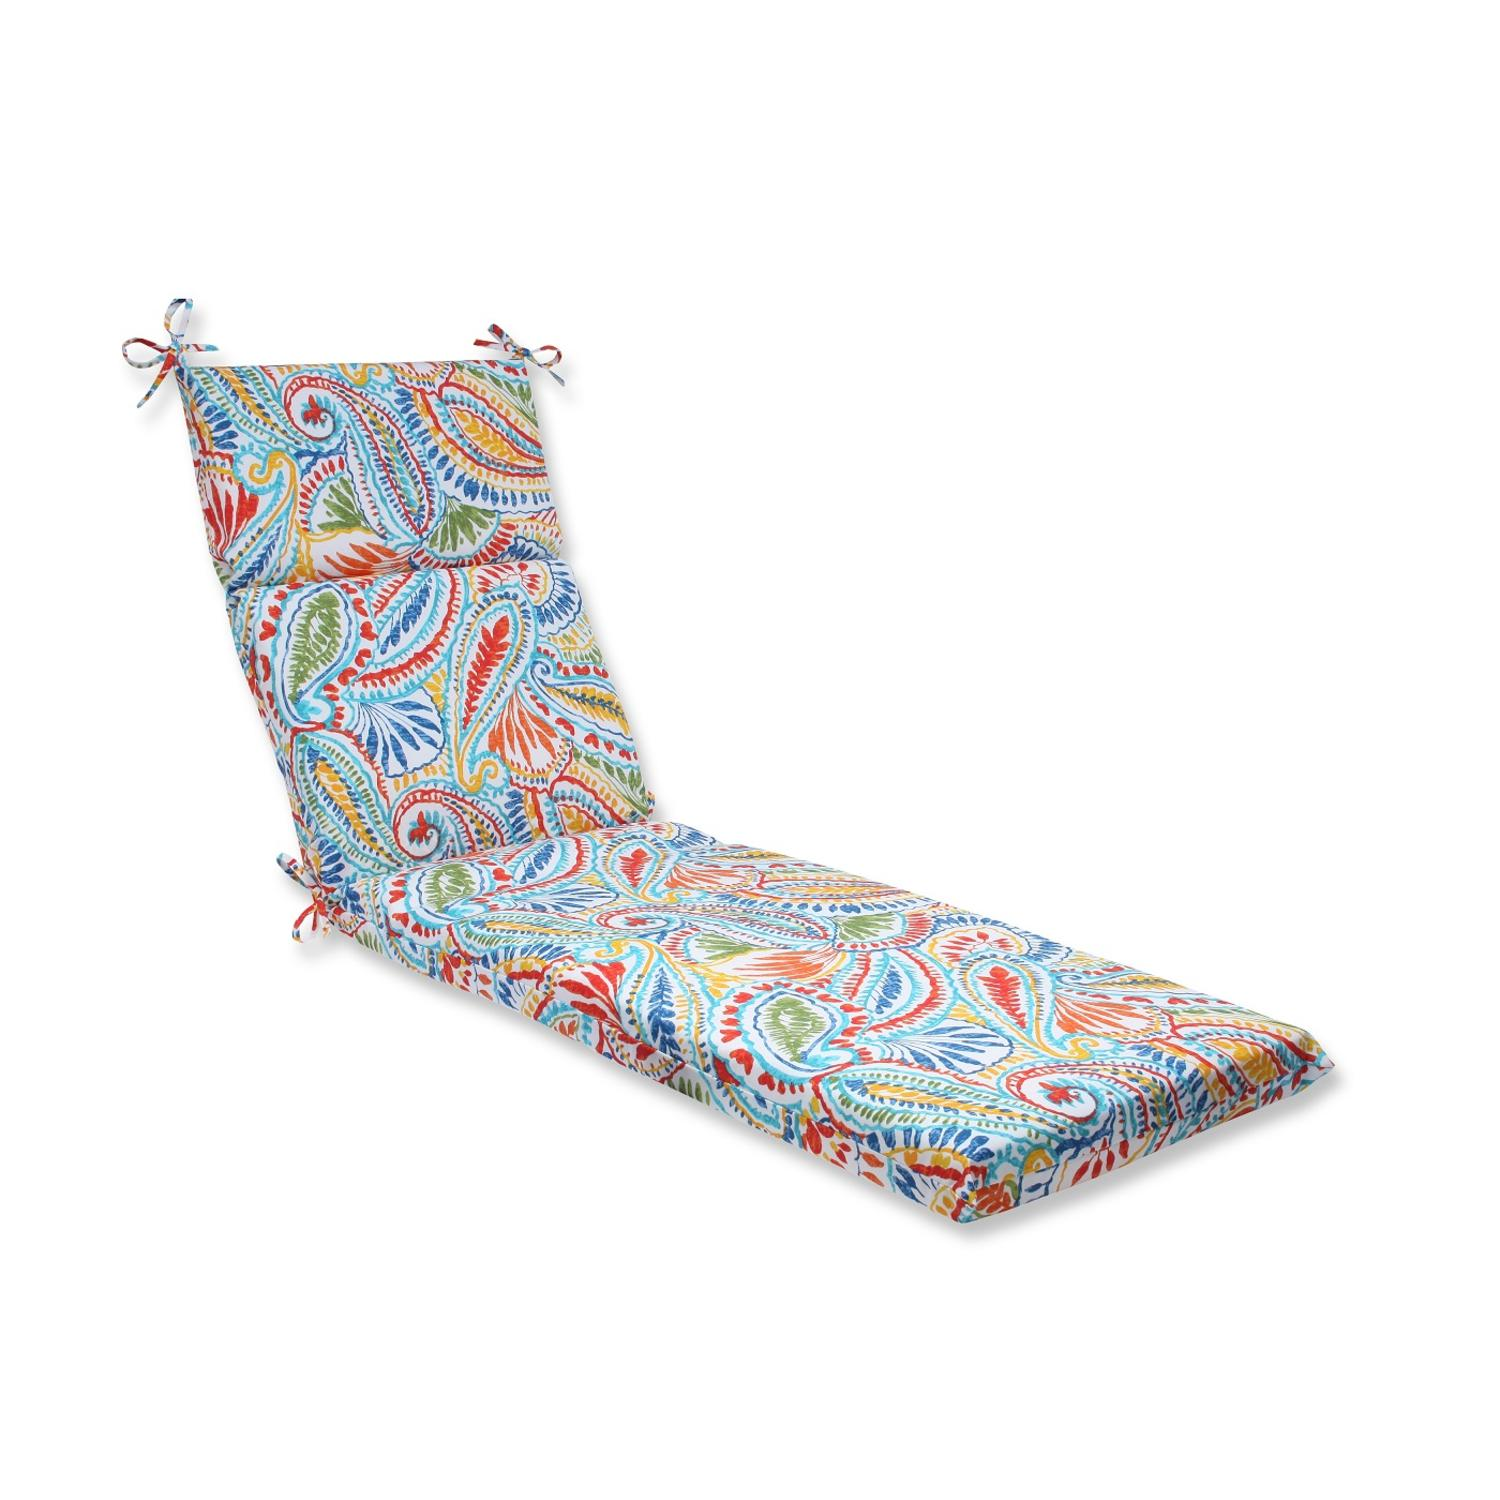 "72.5"" Paisley Burst Outdoor Patio Chaise Lounge Cushion"